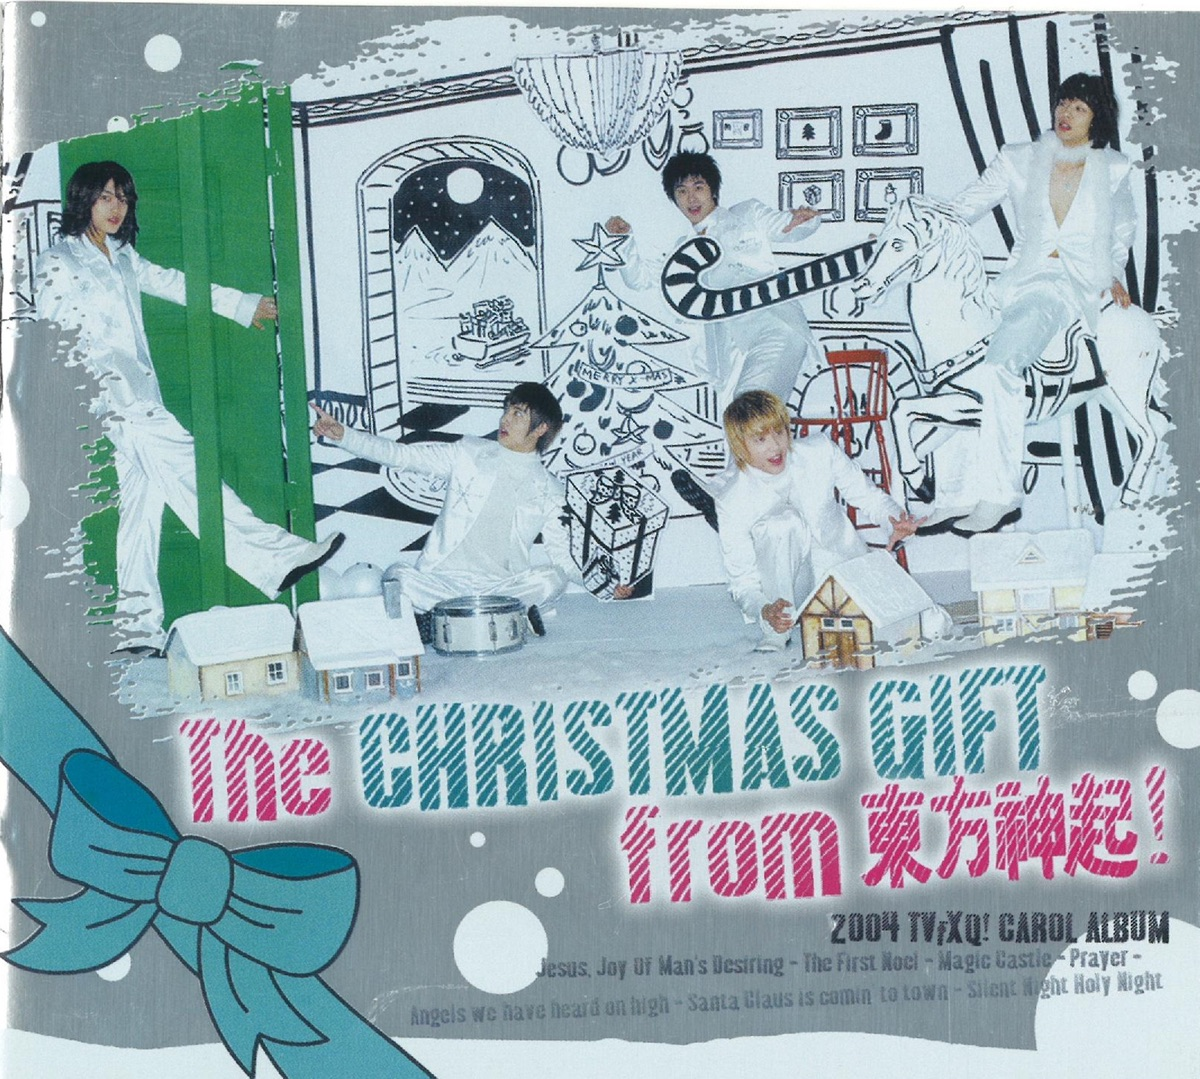 Christmas Gift from TVXQ Album Cover by TVXQ!